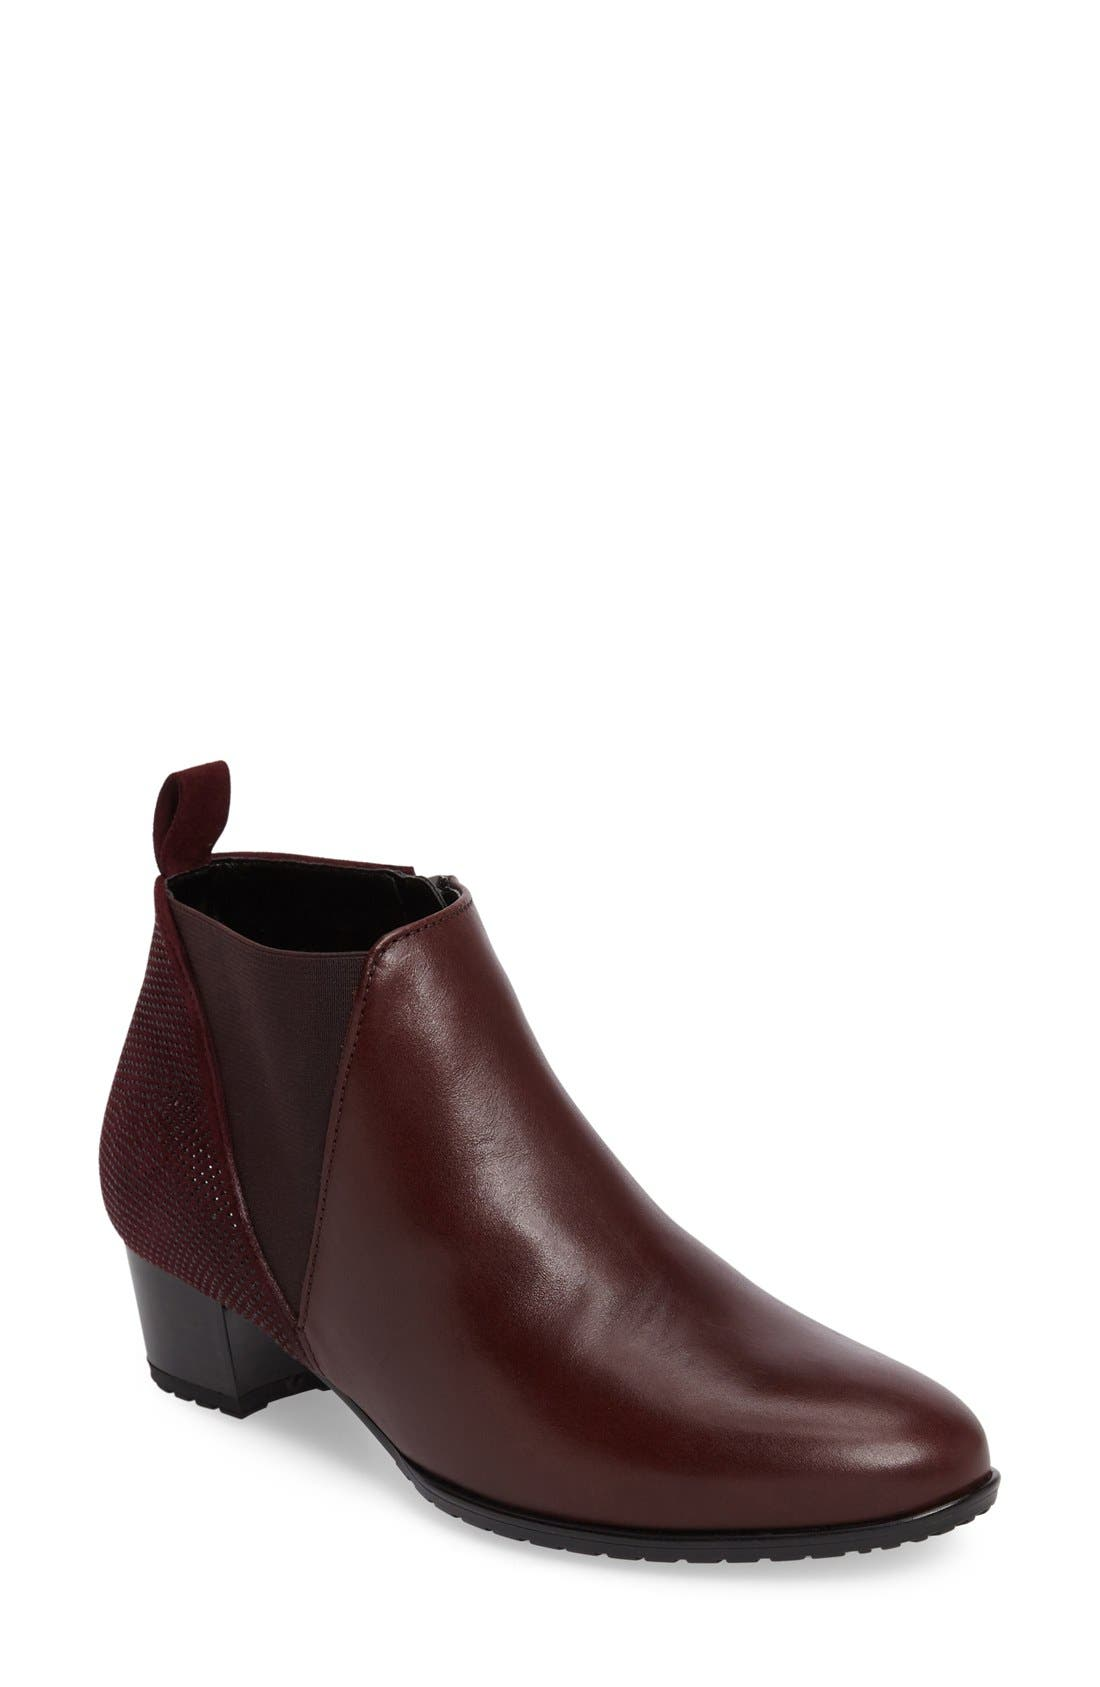 'Patty' Block Heel Boot,                             Main thumbnail 1, color,                             Burgundy Leather